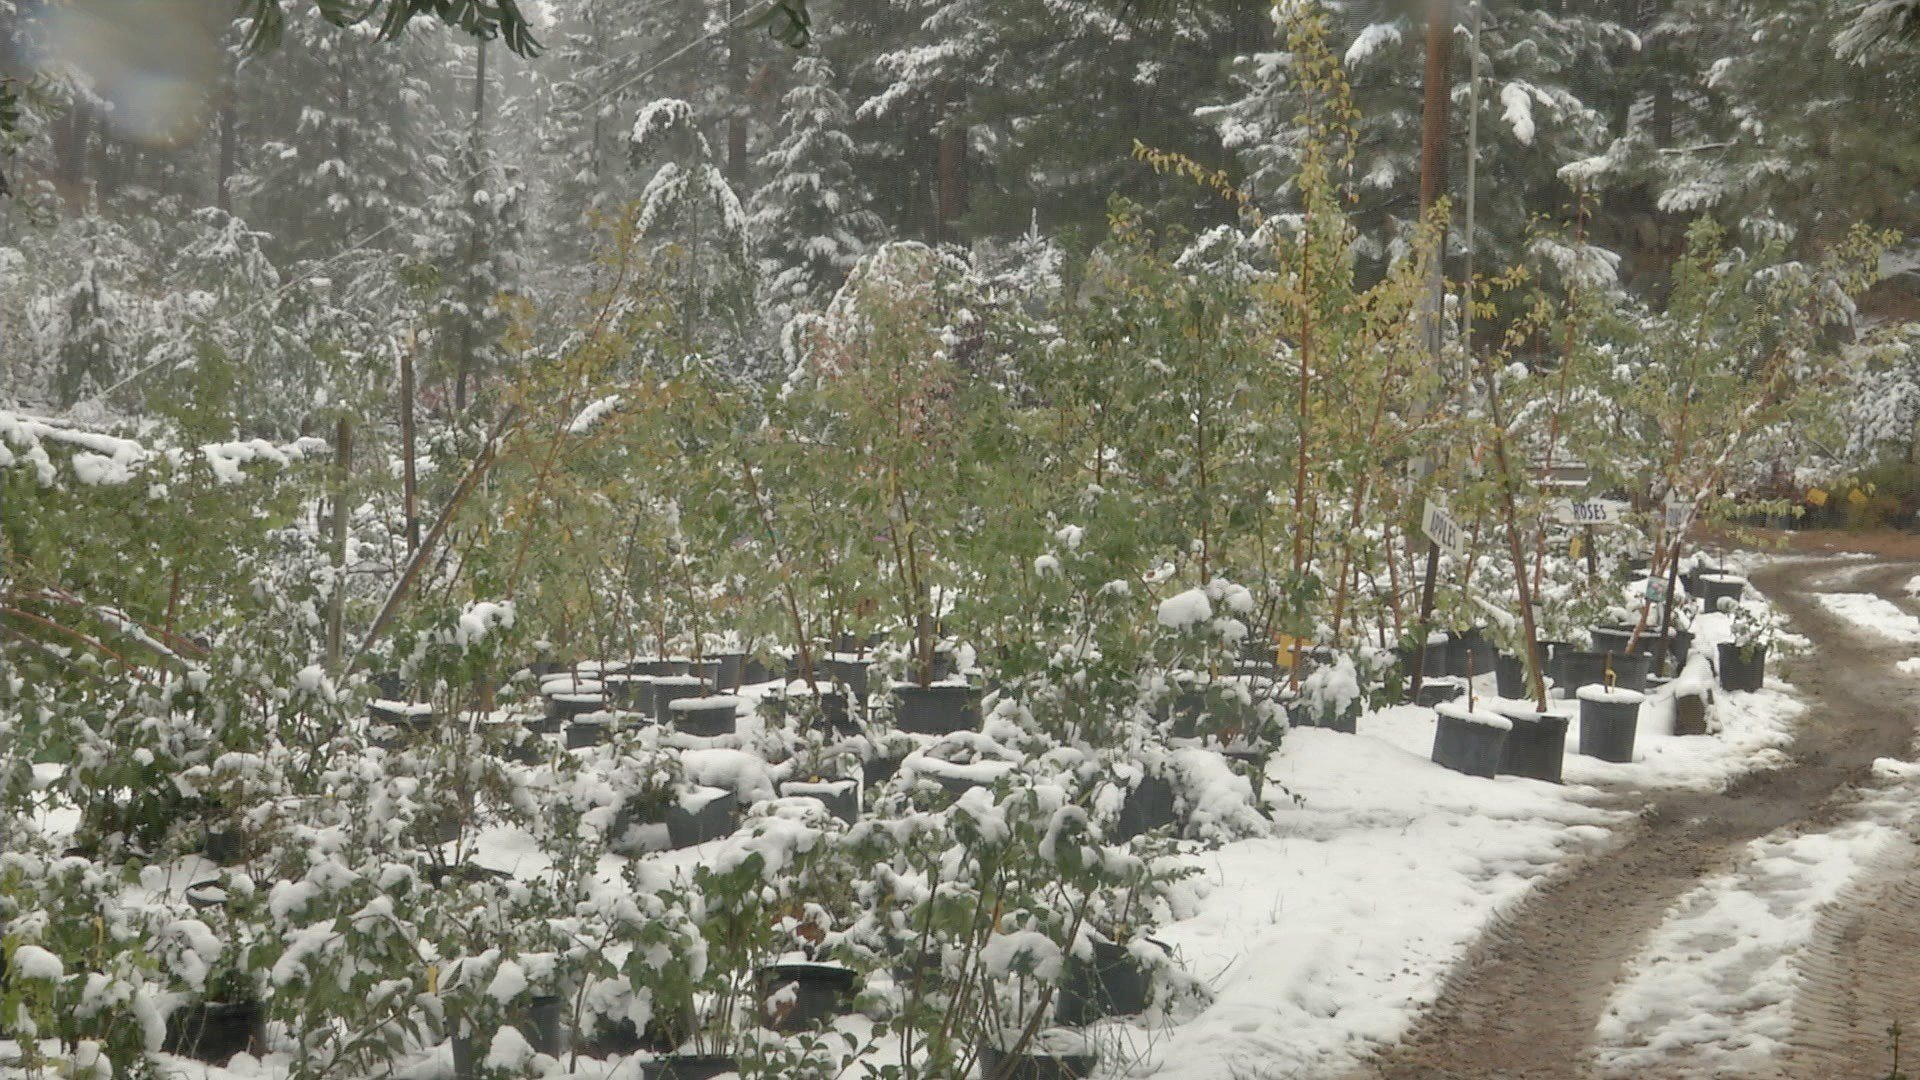 garden experts give advice on protecting plants from freezing we